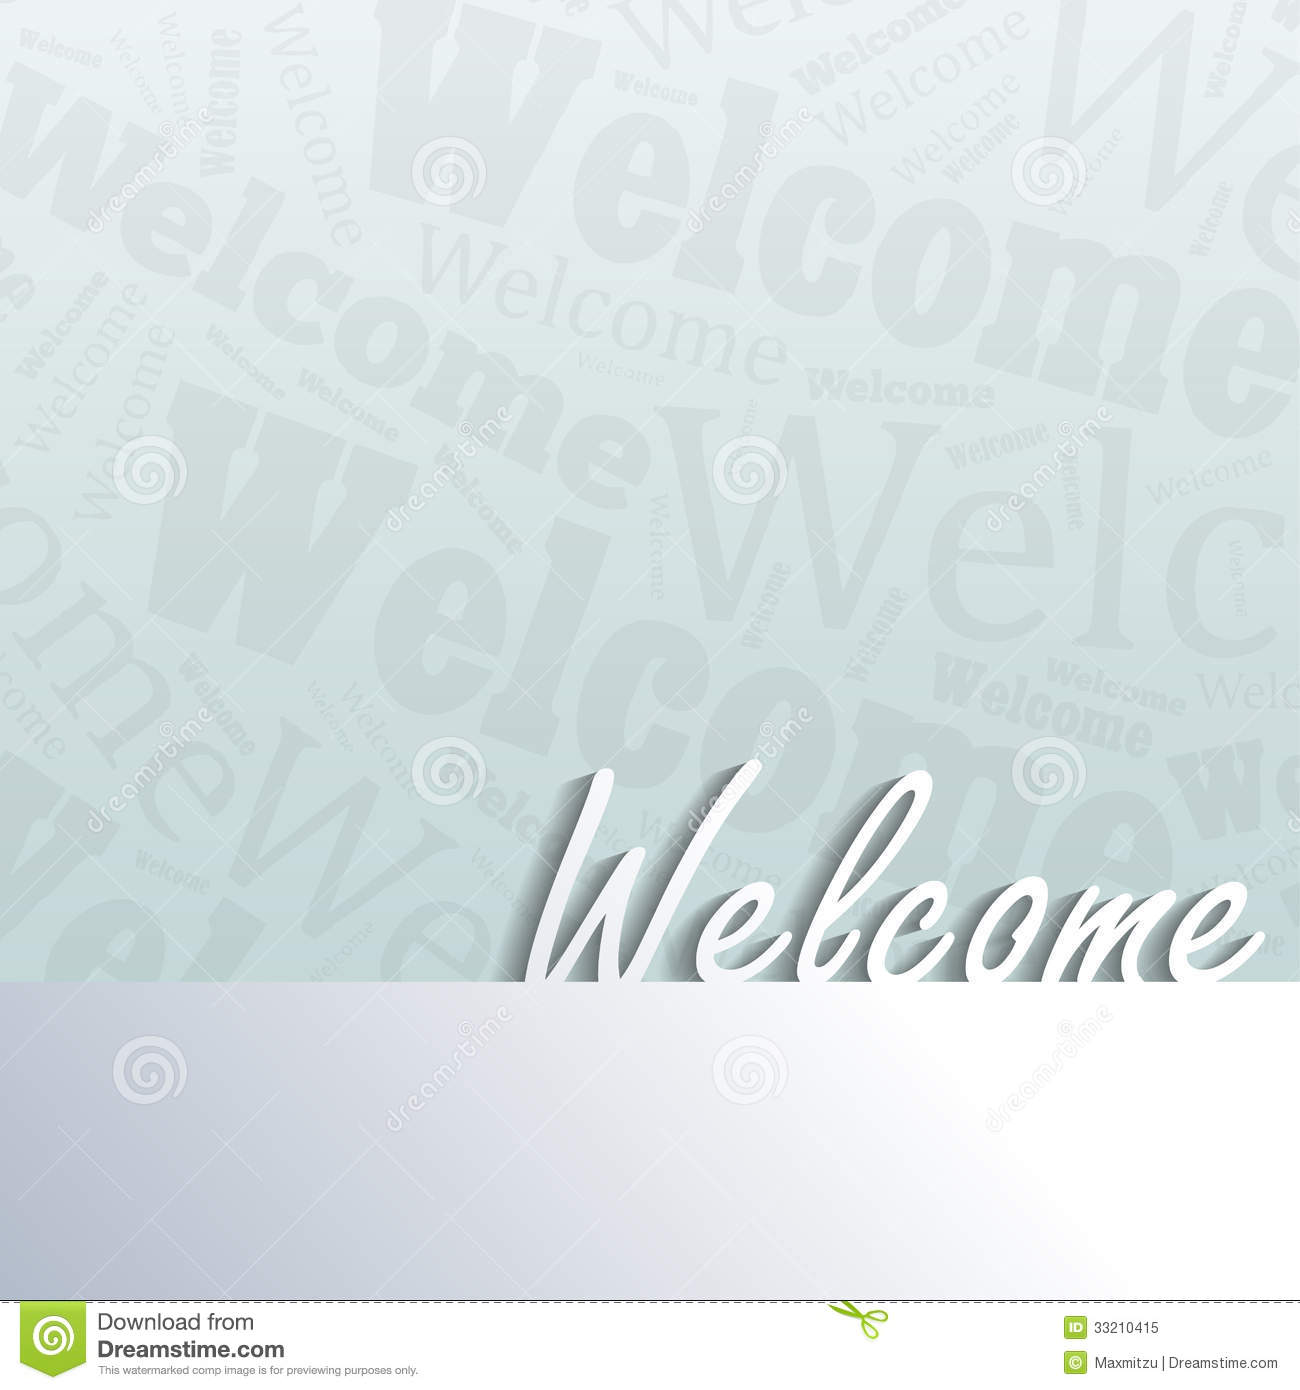 Welcome Background Royalty Free Stock Photo - Image: 33210415: dreamstime.com/royalty-free-stock-photo-welcome-background-space...